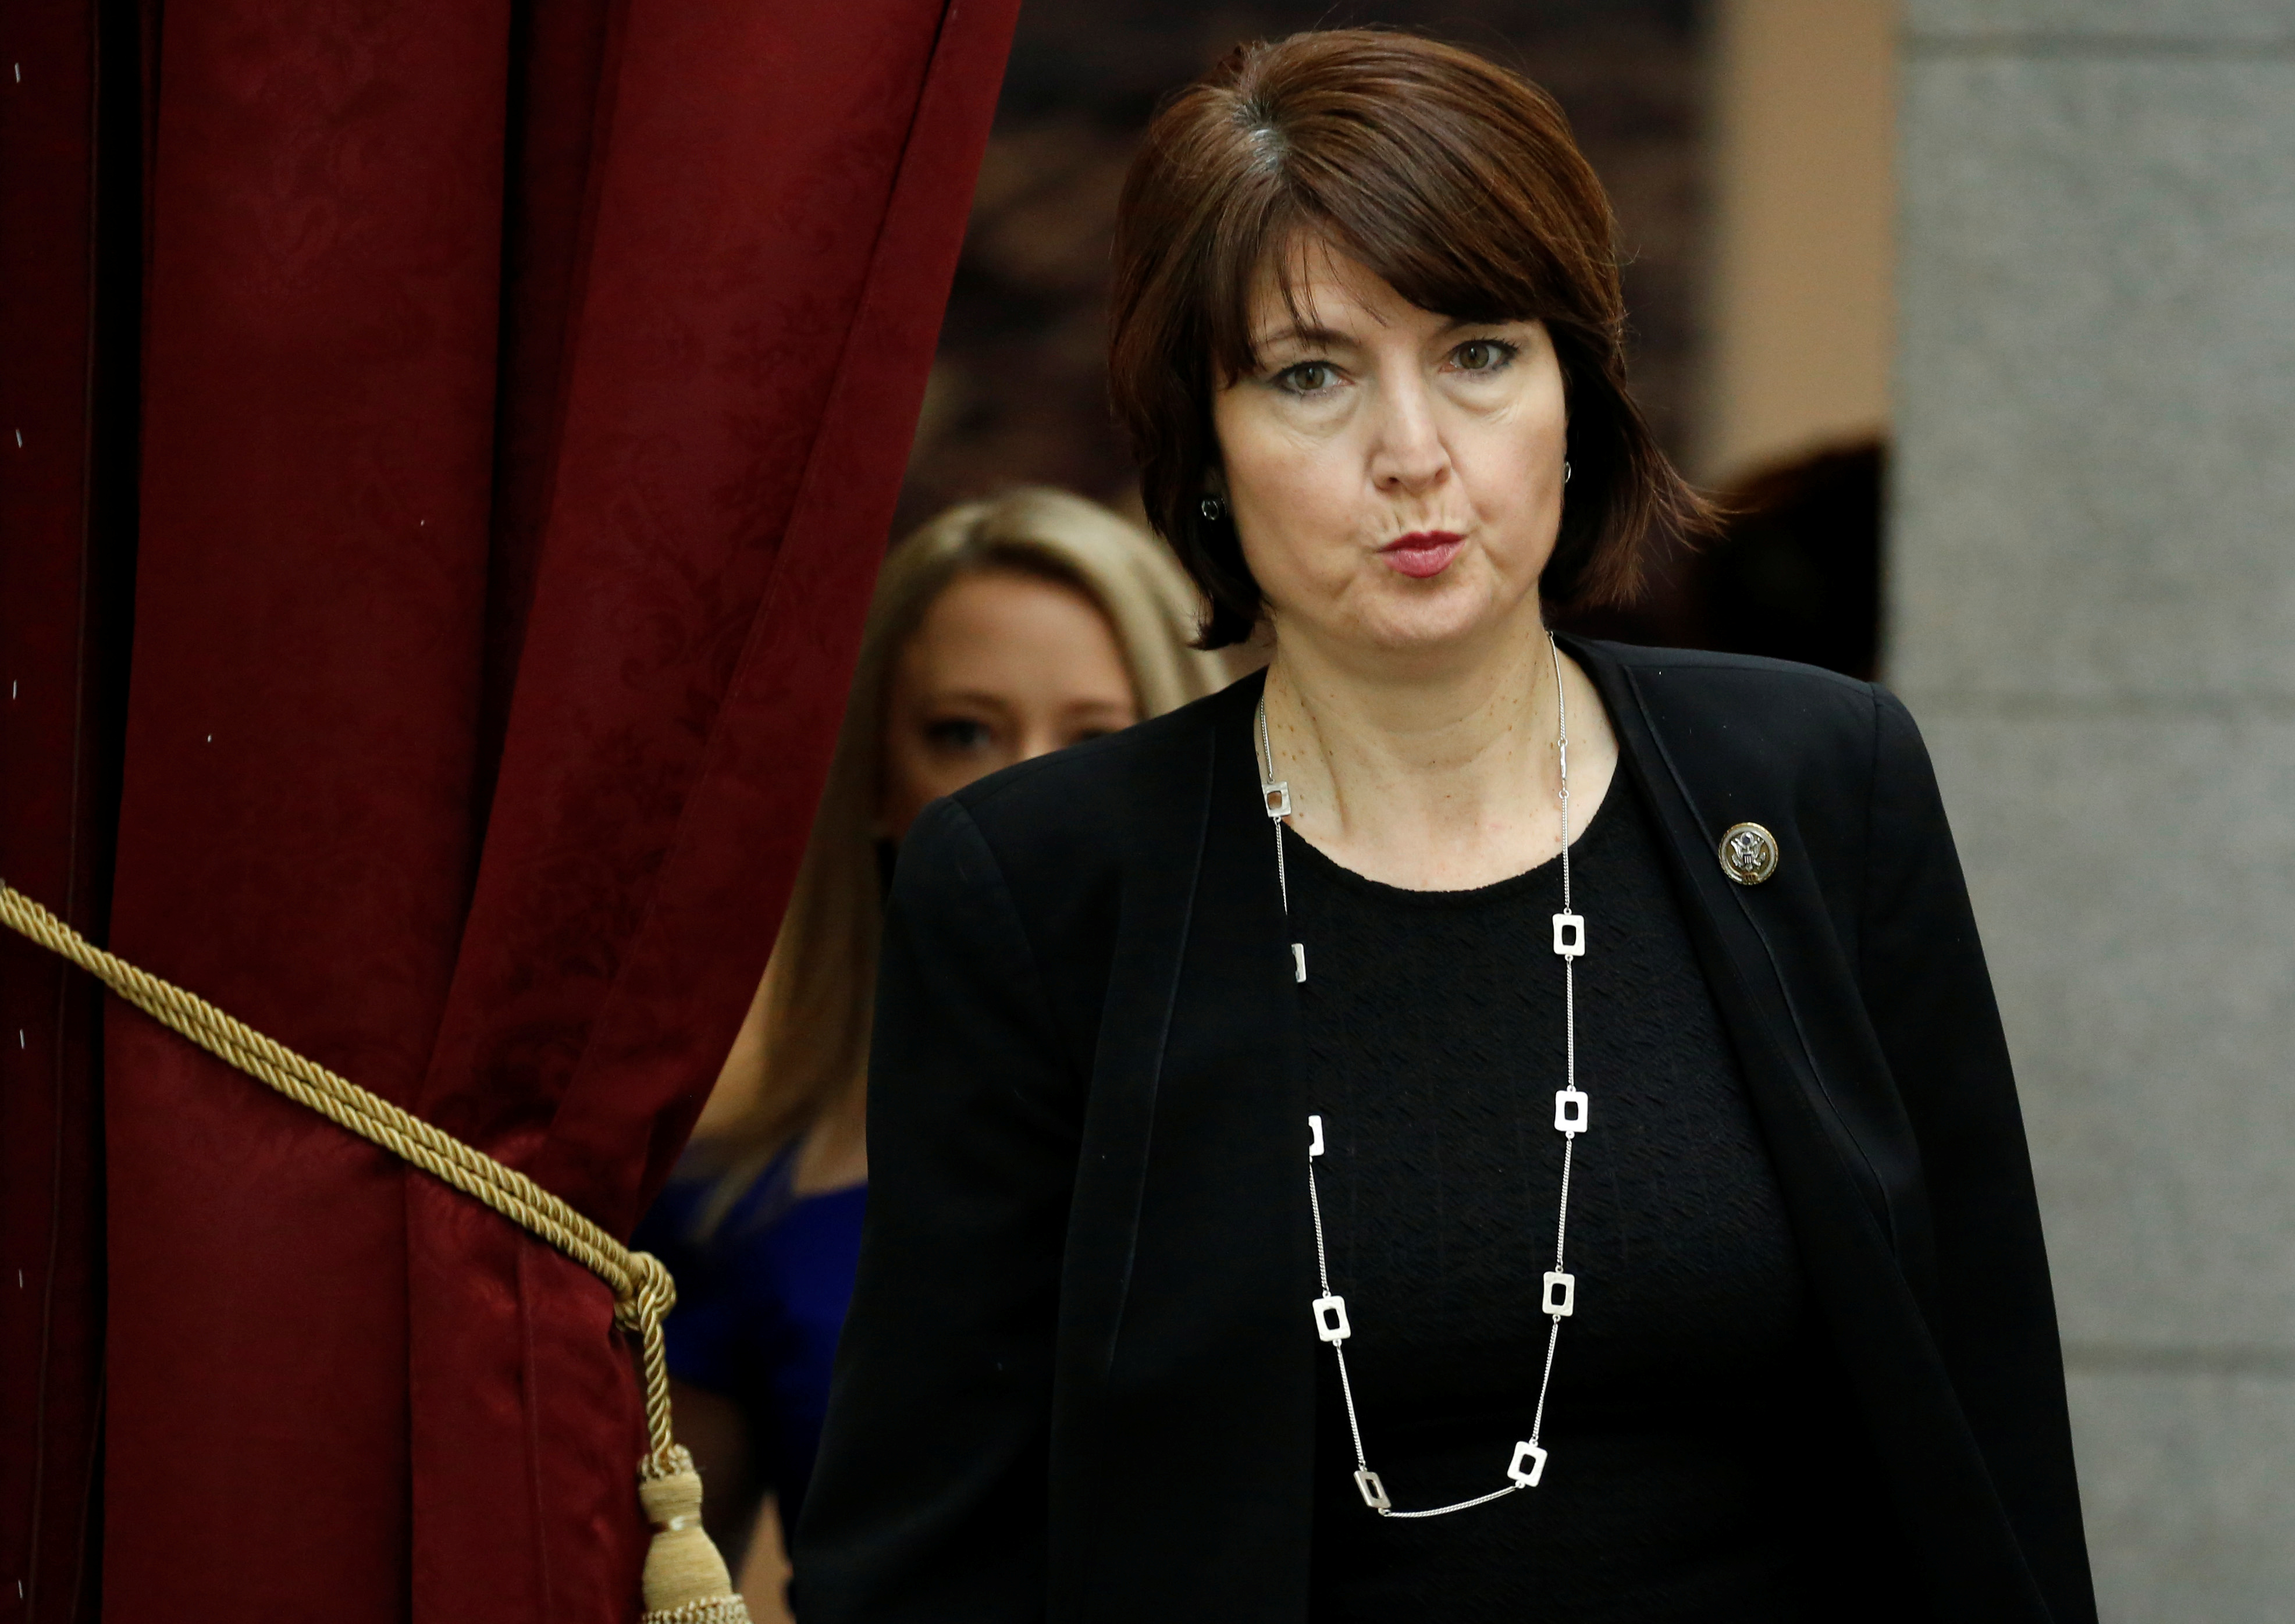 Rep. Cathy McMorris Rodgers (R-WA) arrives for a Republican caucus meeting ahead of an expected vote in the Republican-led U.S. House of Representatives on a short-term budget measure that would avert a rerun of last month's three-day partial government shutdown on Capitol Hill in Washington, U.S., February 6, 2018. REUTERS/Joshua Roberts